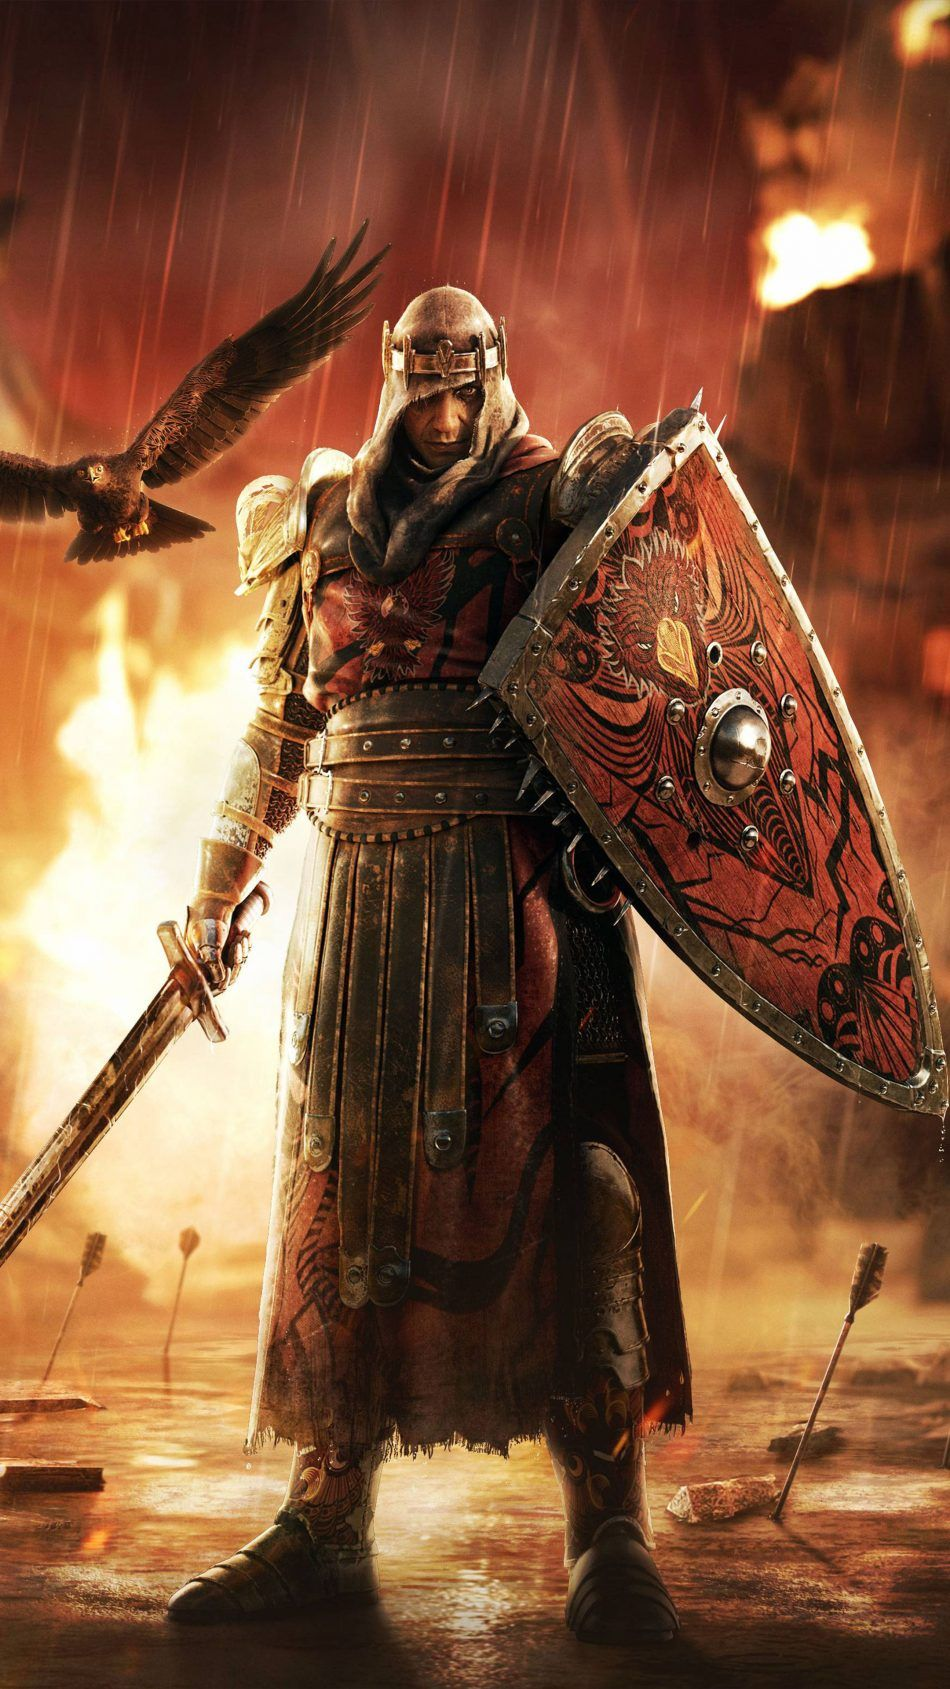 For Honor Game Warrior Sword Video Game Wallpapers For